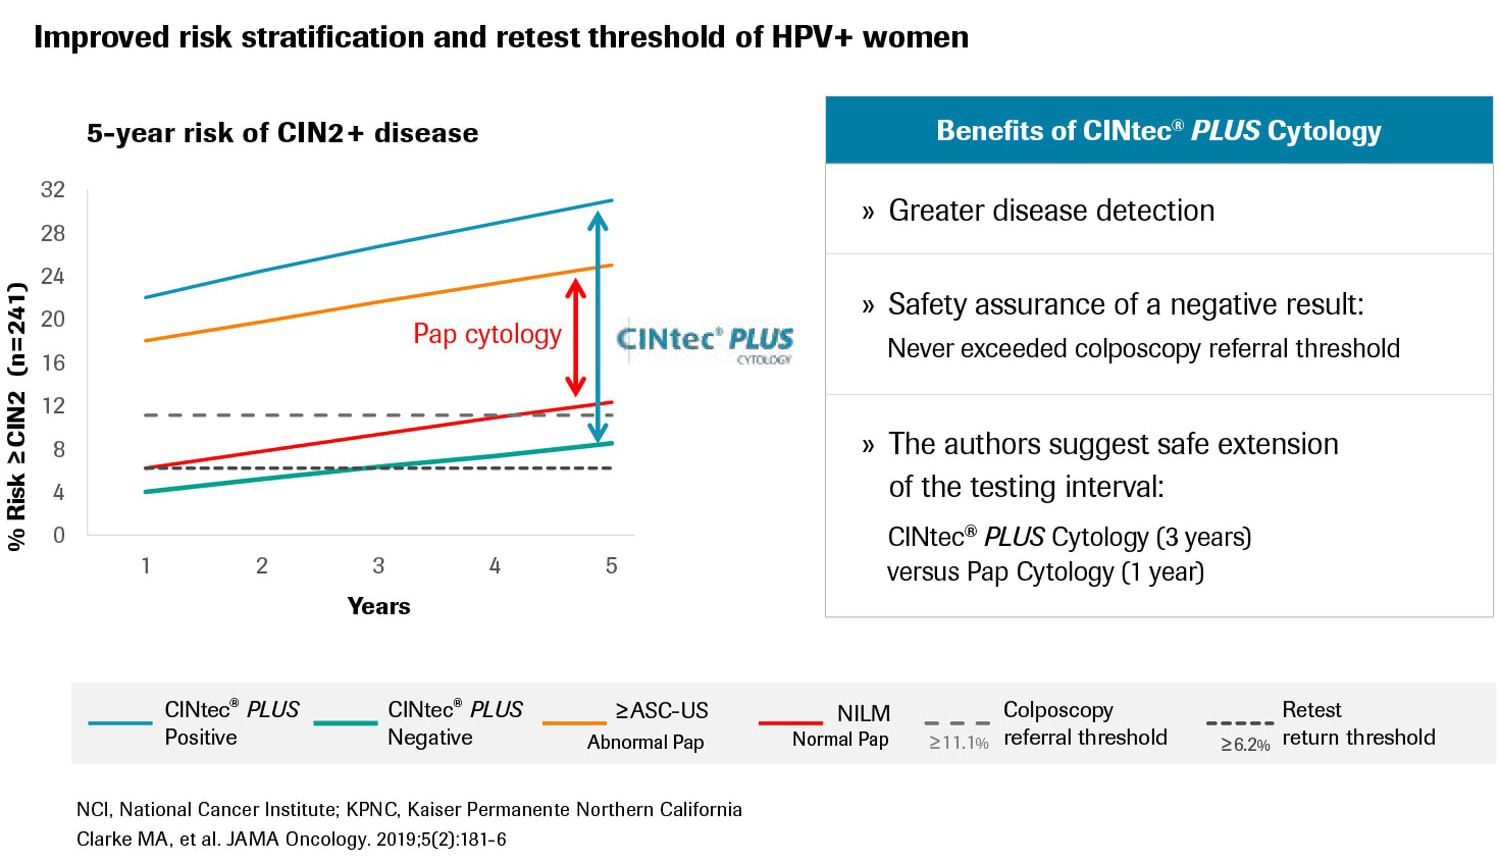 5-year risk stratification chart of CINtec PLUS Cytology compared to Pap Cytology